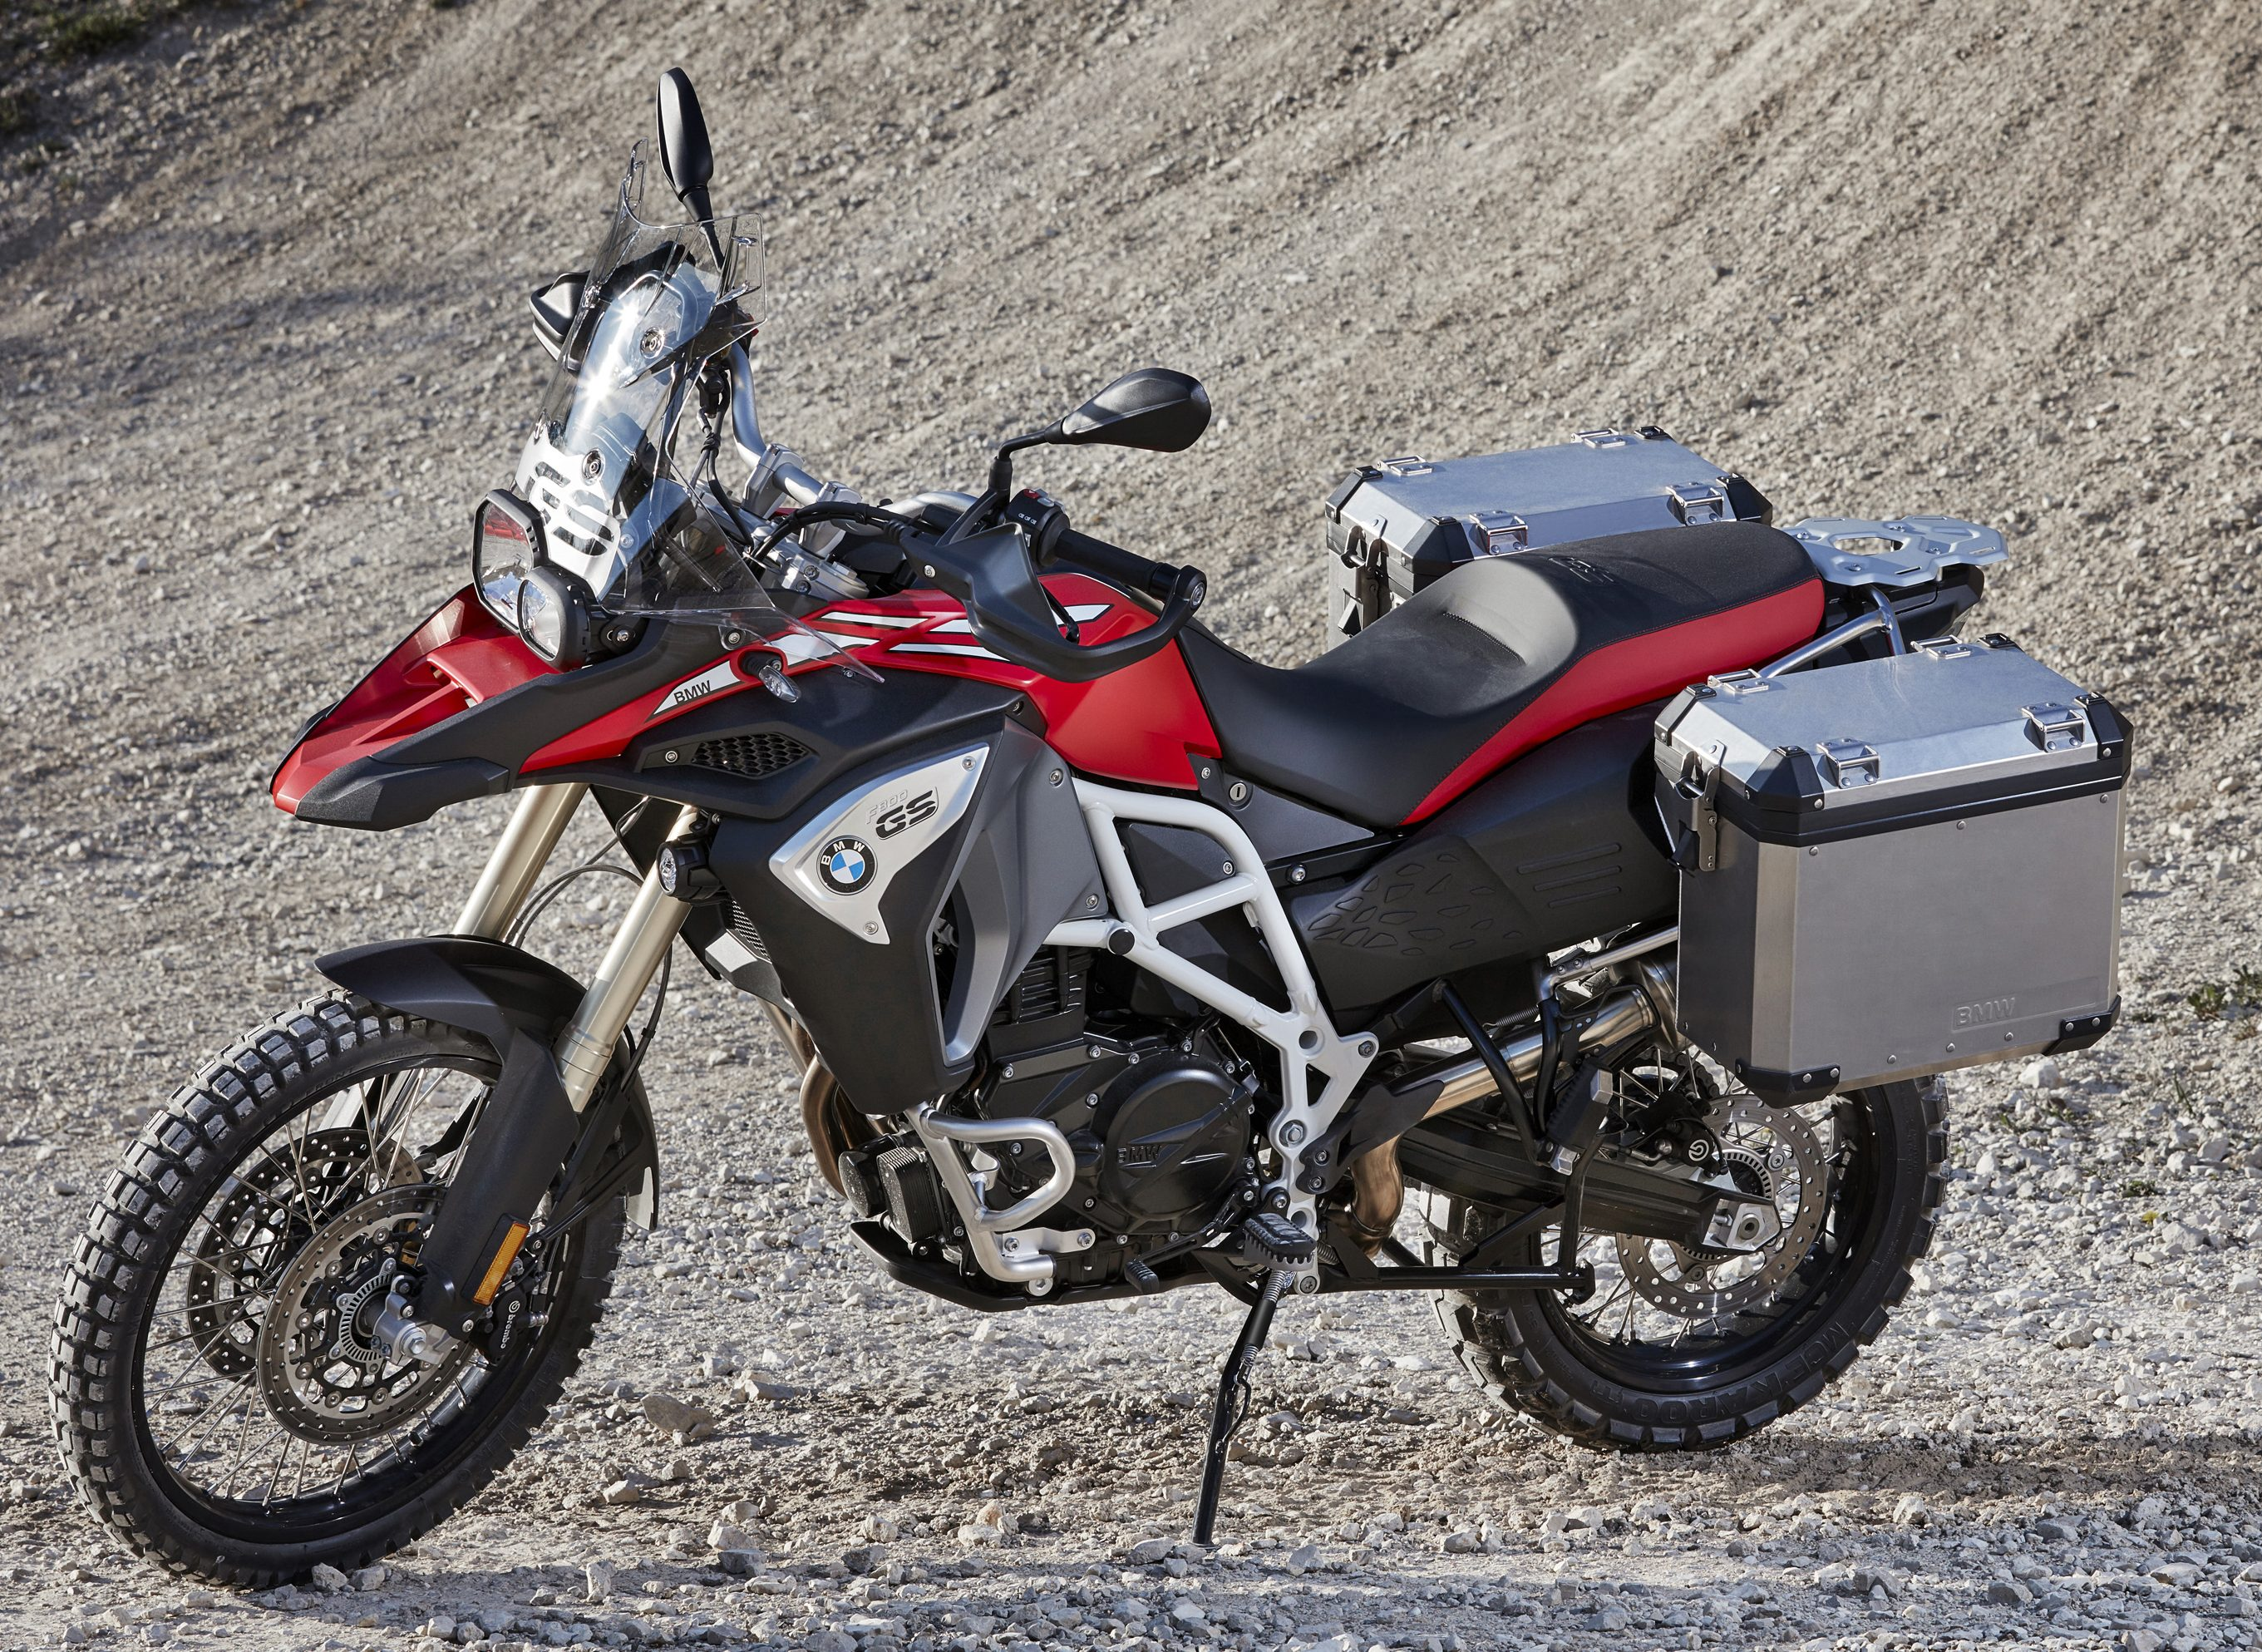 2017 BMW Motorrad F700 GS, F800 GS and F800 GS Adventure – Euro 4 compliant, now with ride modes ...